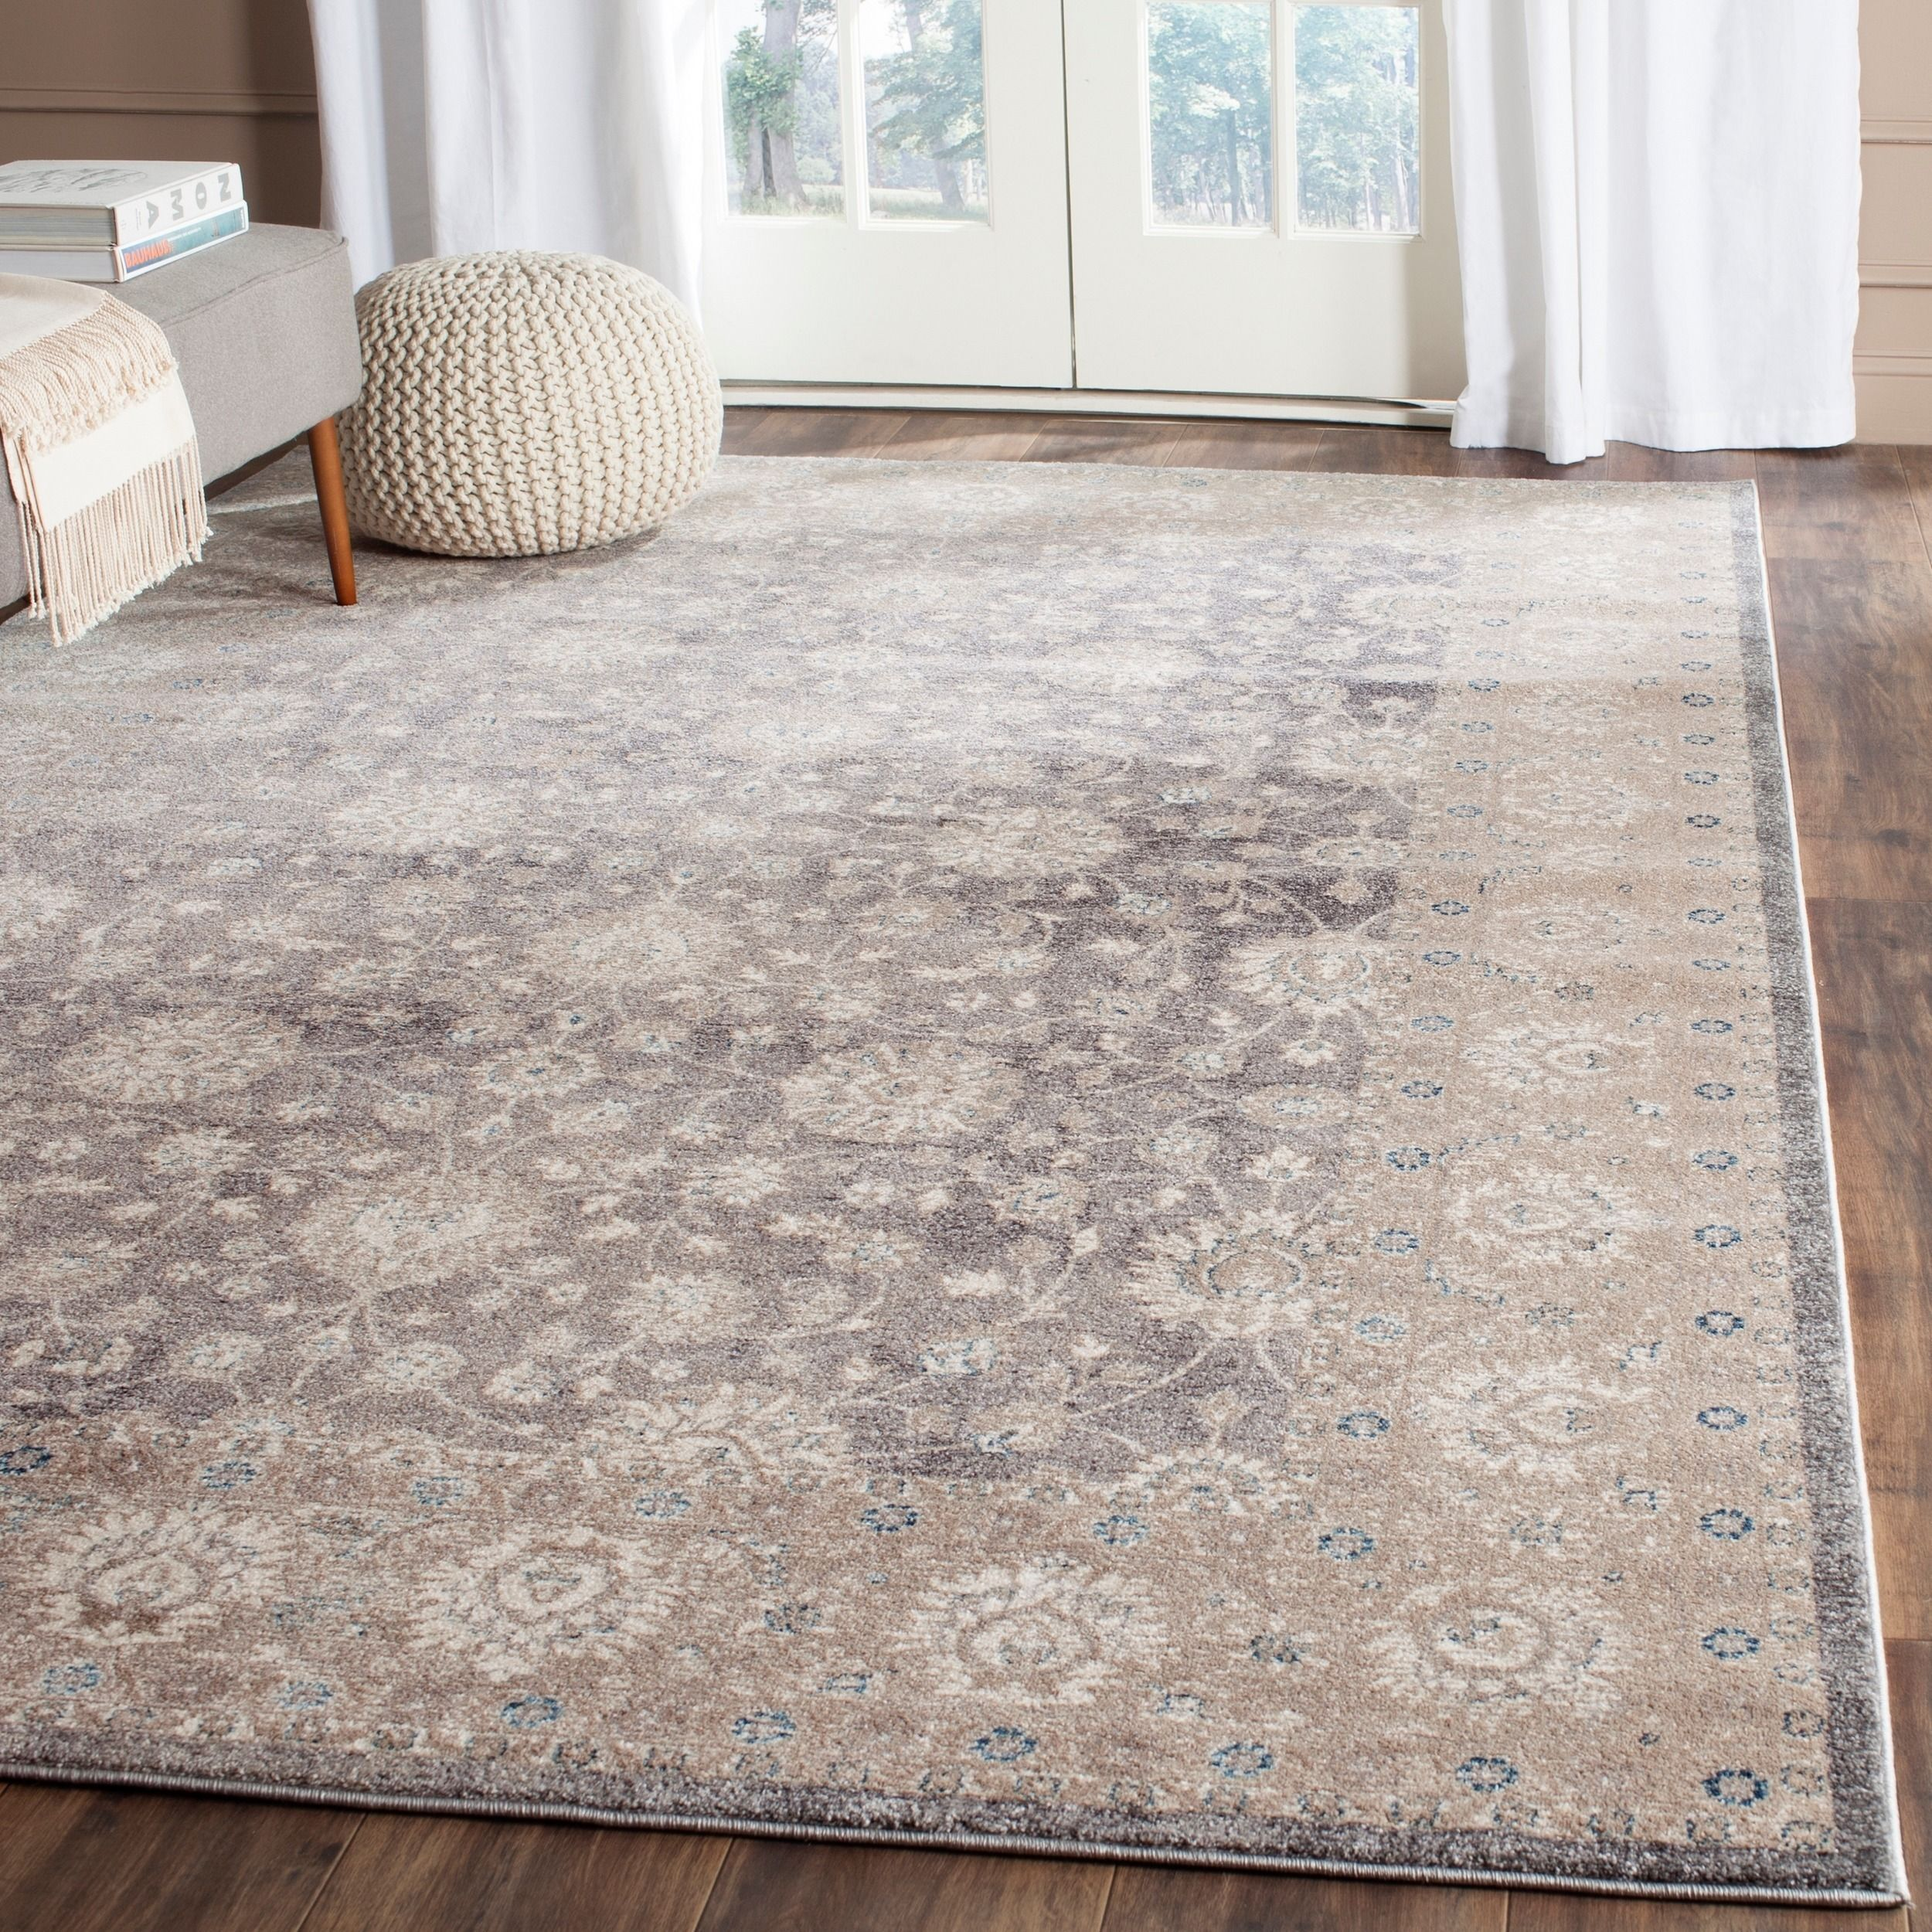 doherty rug outdoor indoor area rugs x house